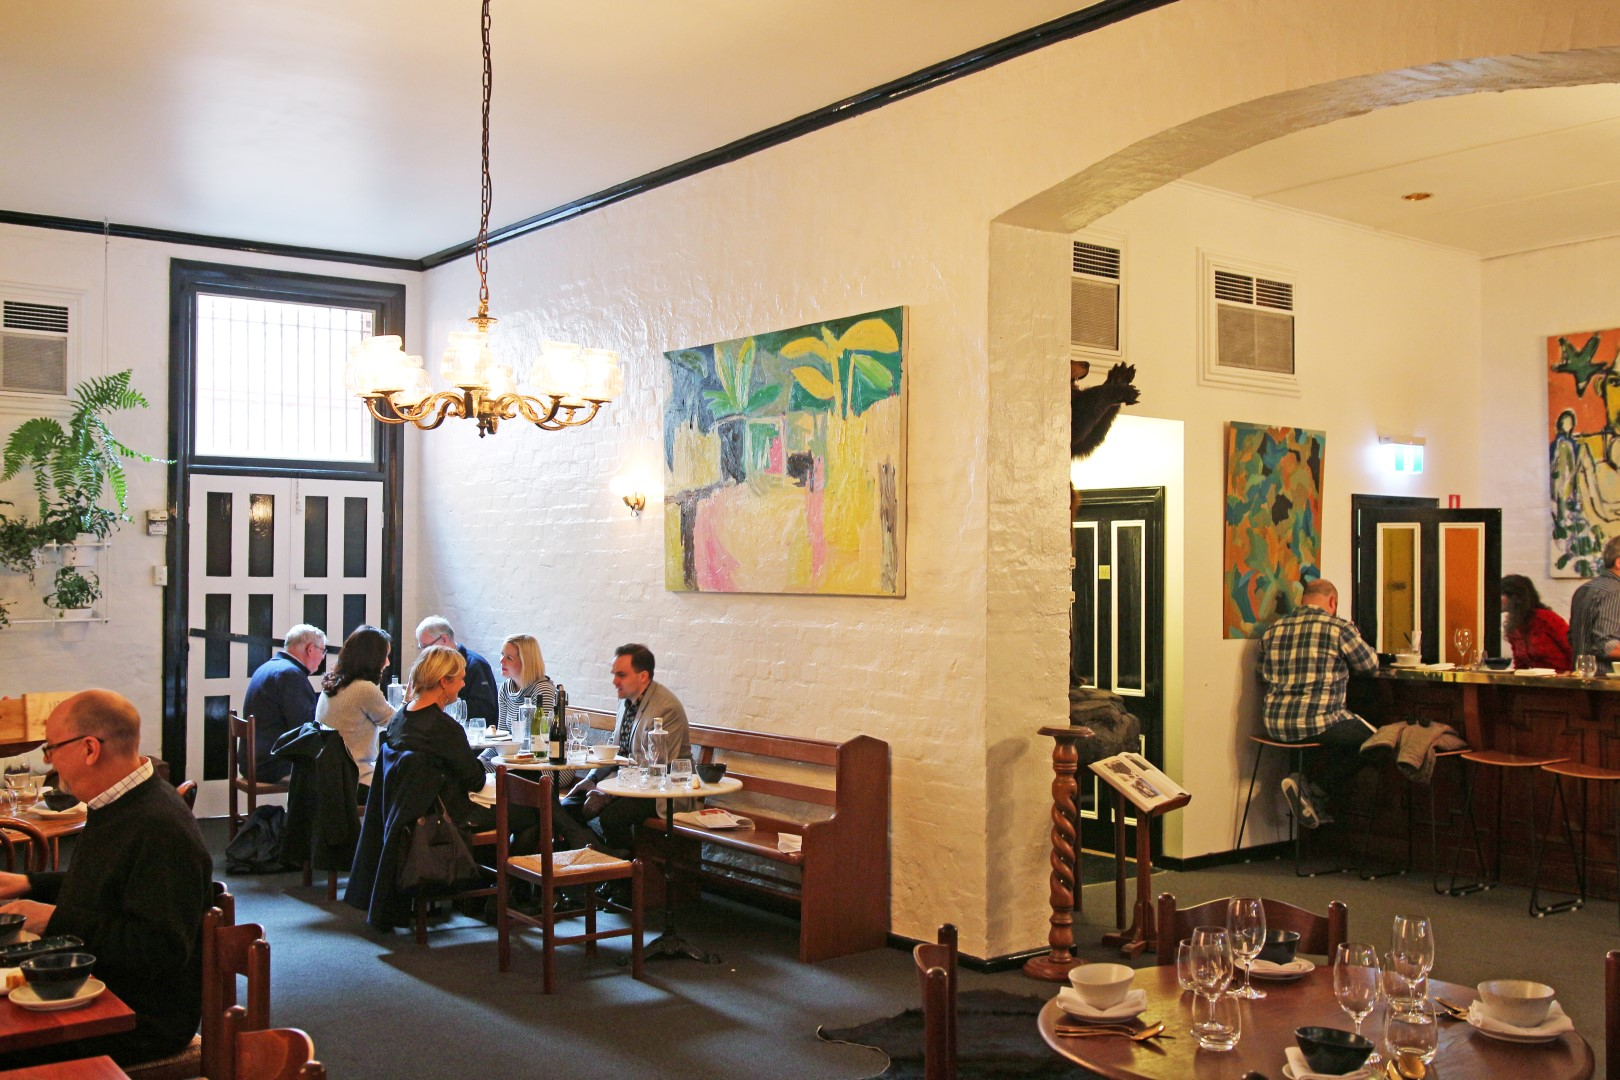 One of the main dining rooms at The Henry Austin